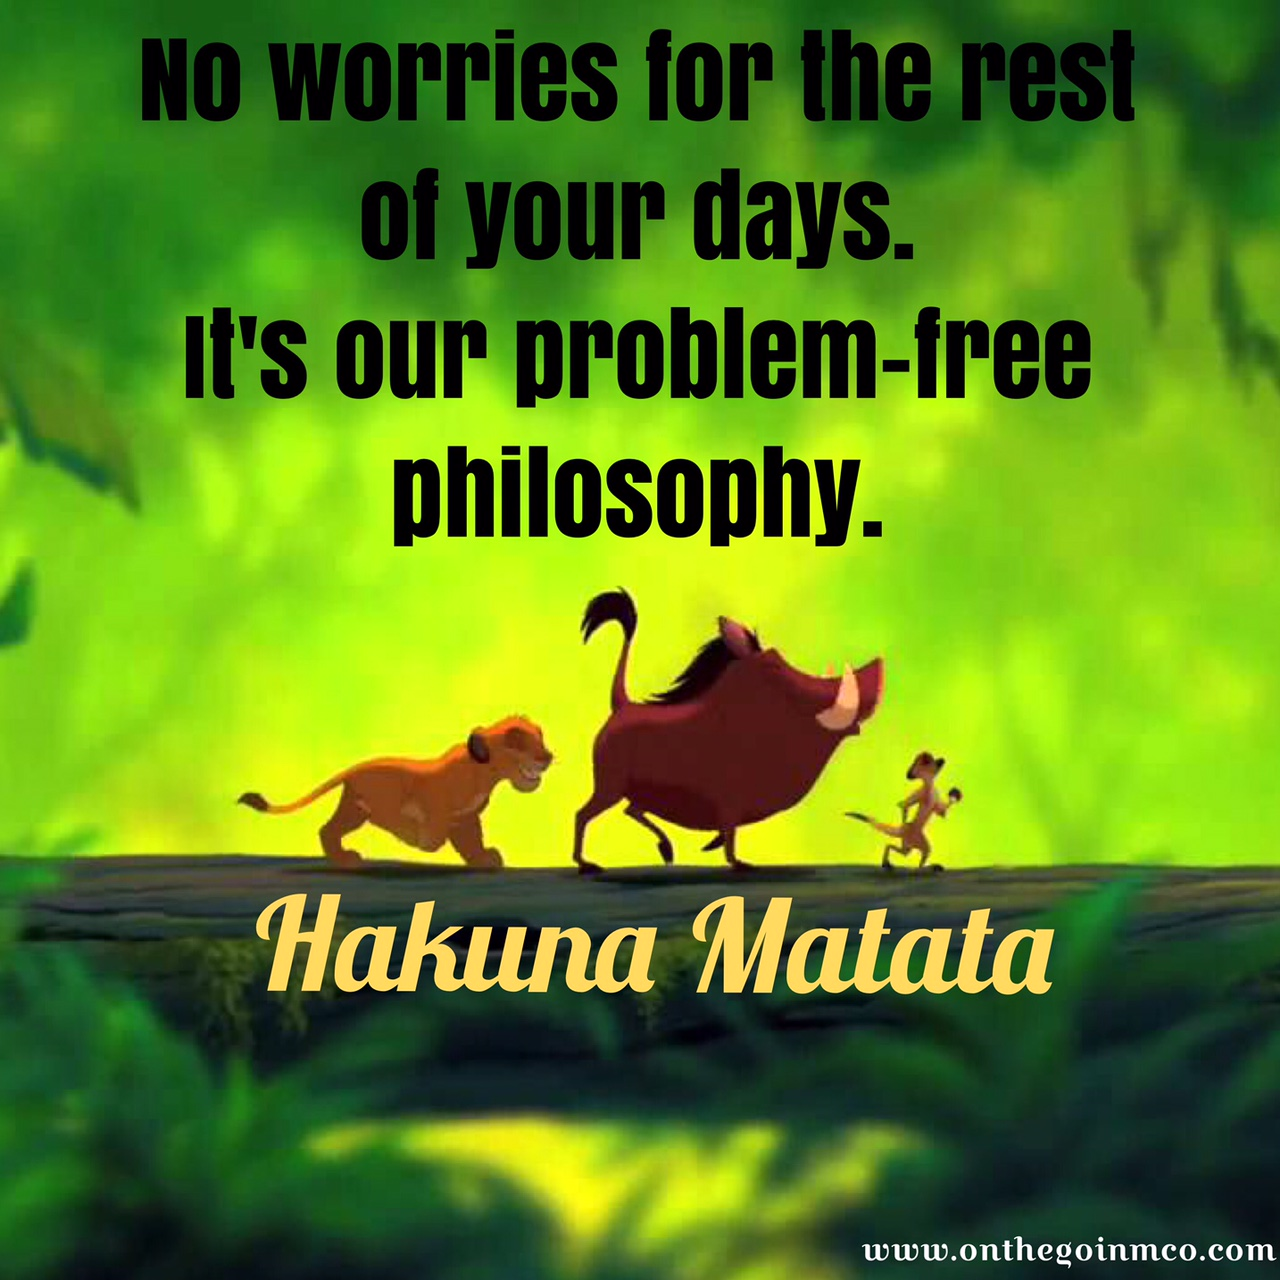 Disney Movie Quotes After a long week Hakuna Matata Timon Pumbaa The Lion King